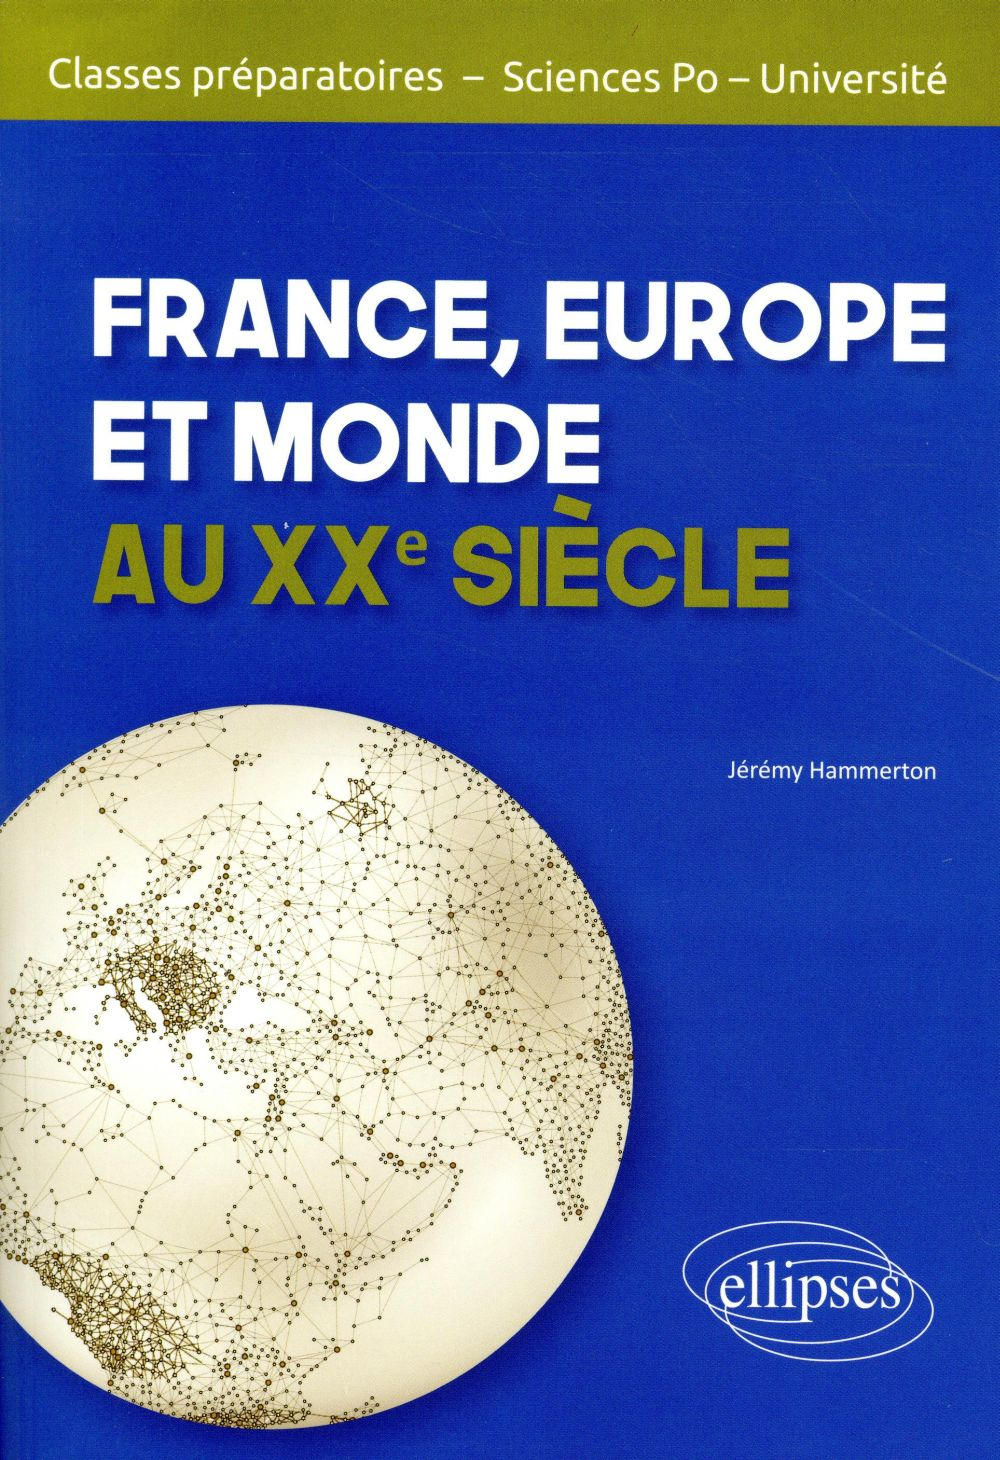 FRANCE EUROPE ET MONDE AU XXE SIECLE